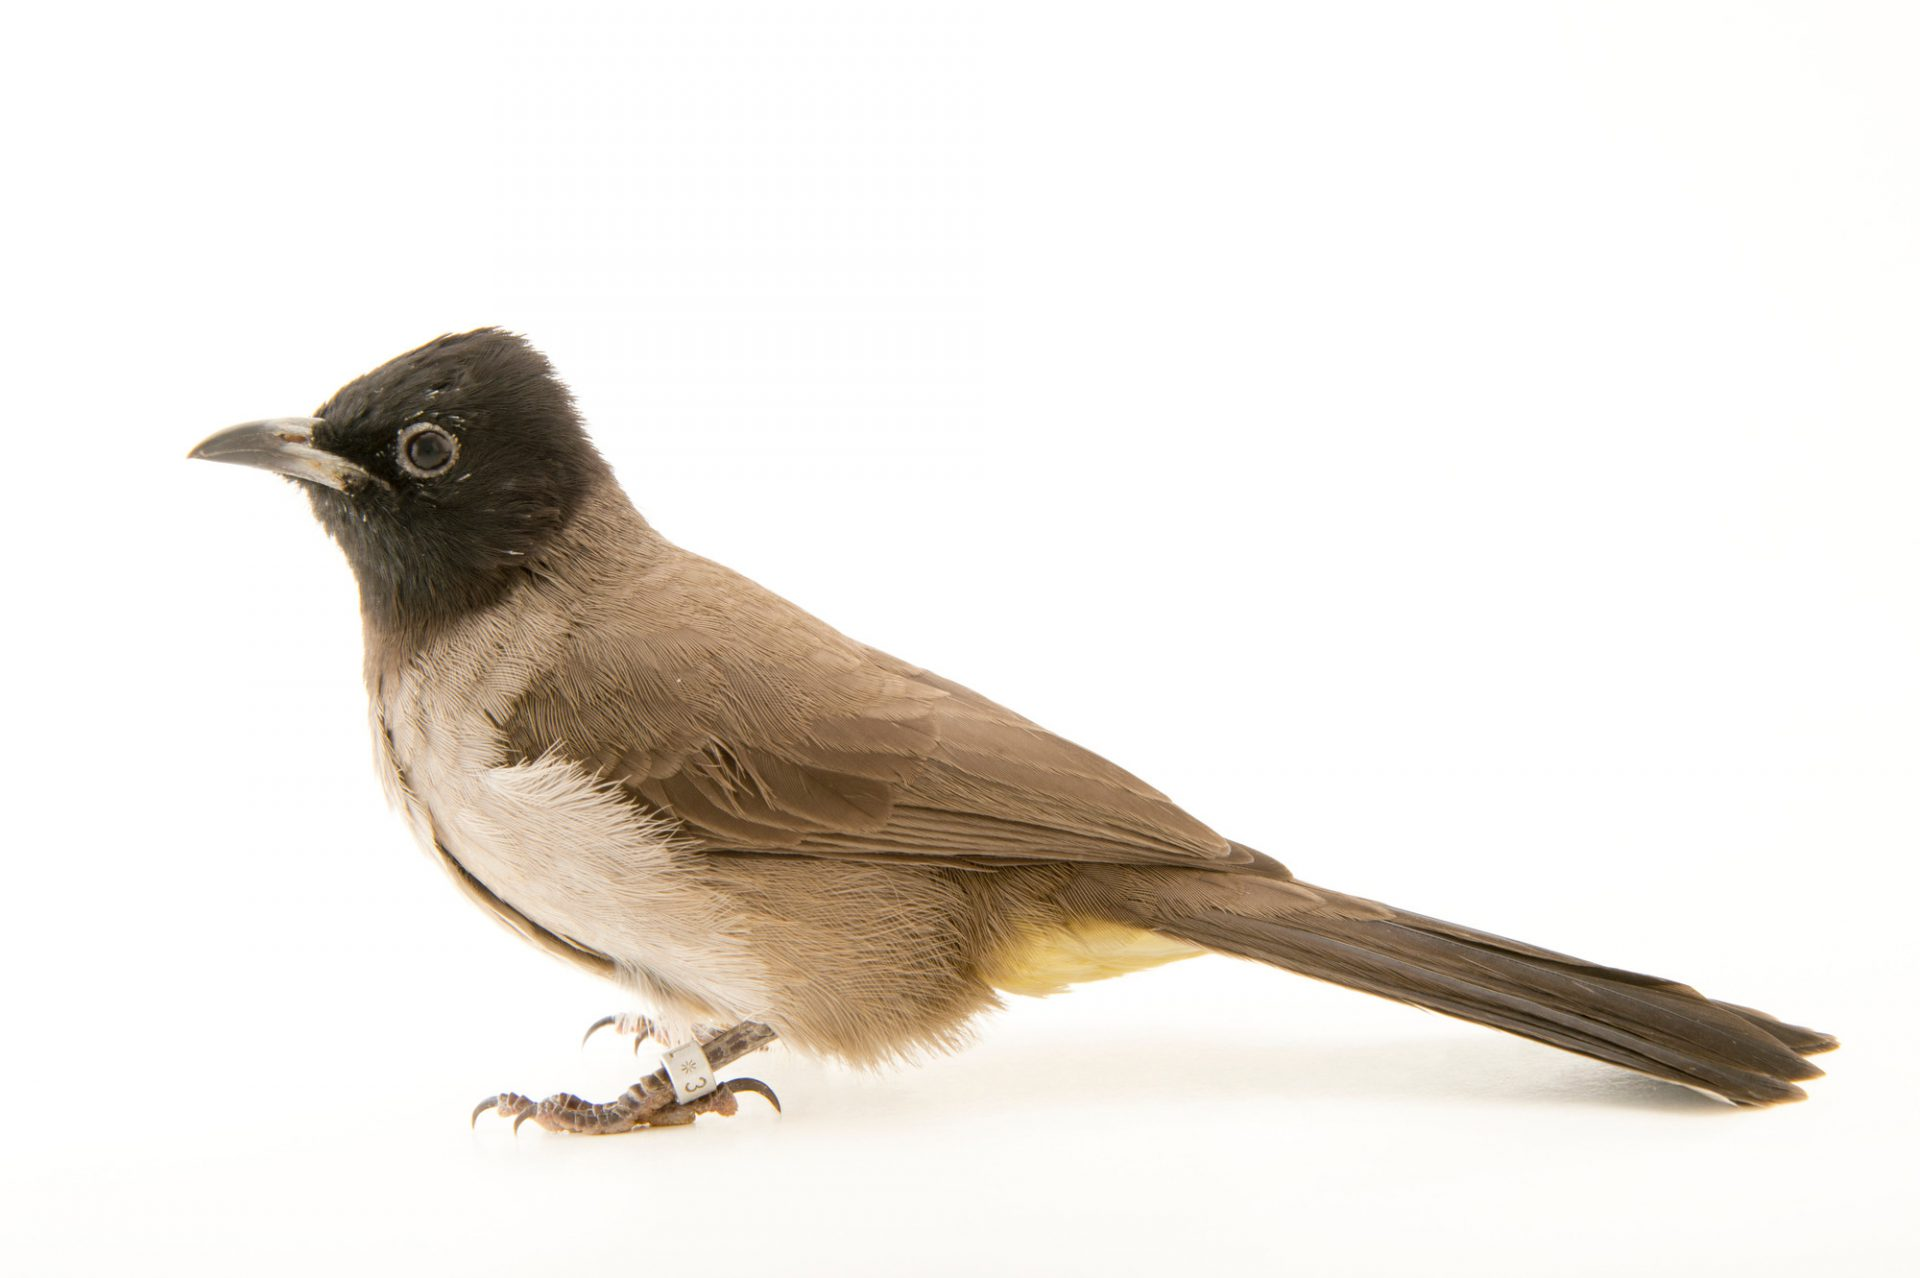 Photo: A white spectacled bulbul (Pycnonotus xanthopygos) at the Plzen Zoo in the Czech Republic.